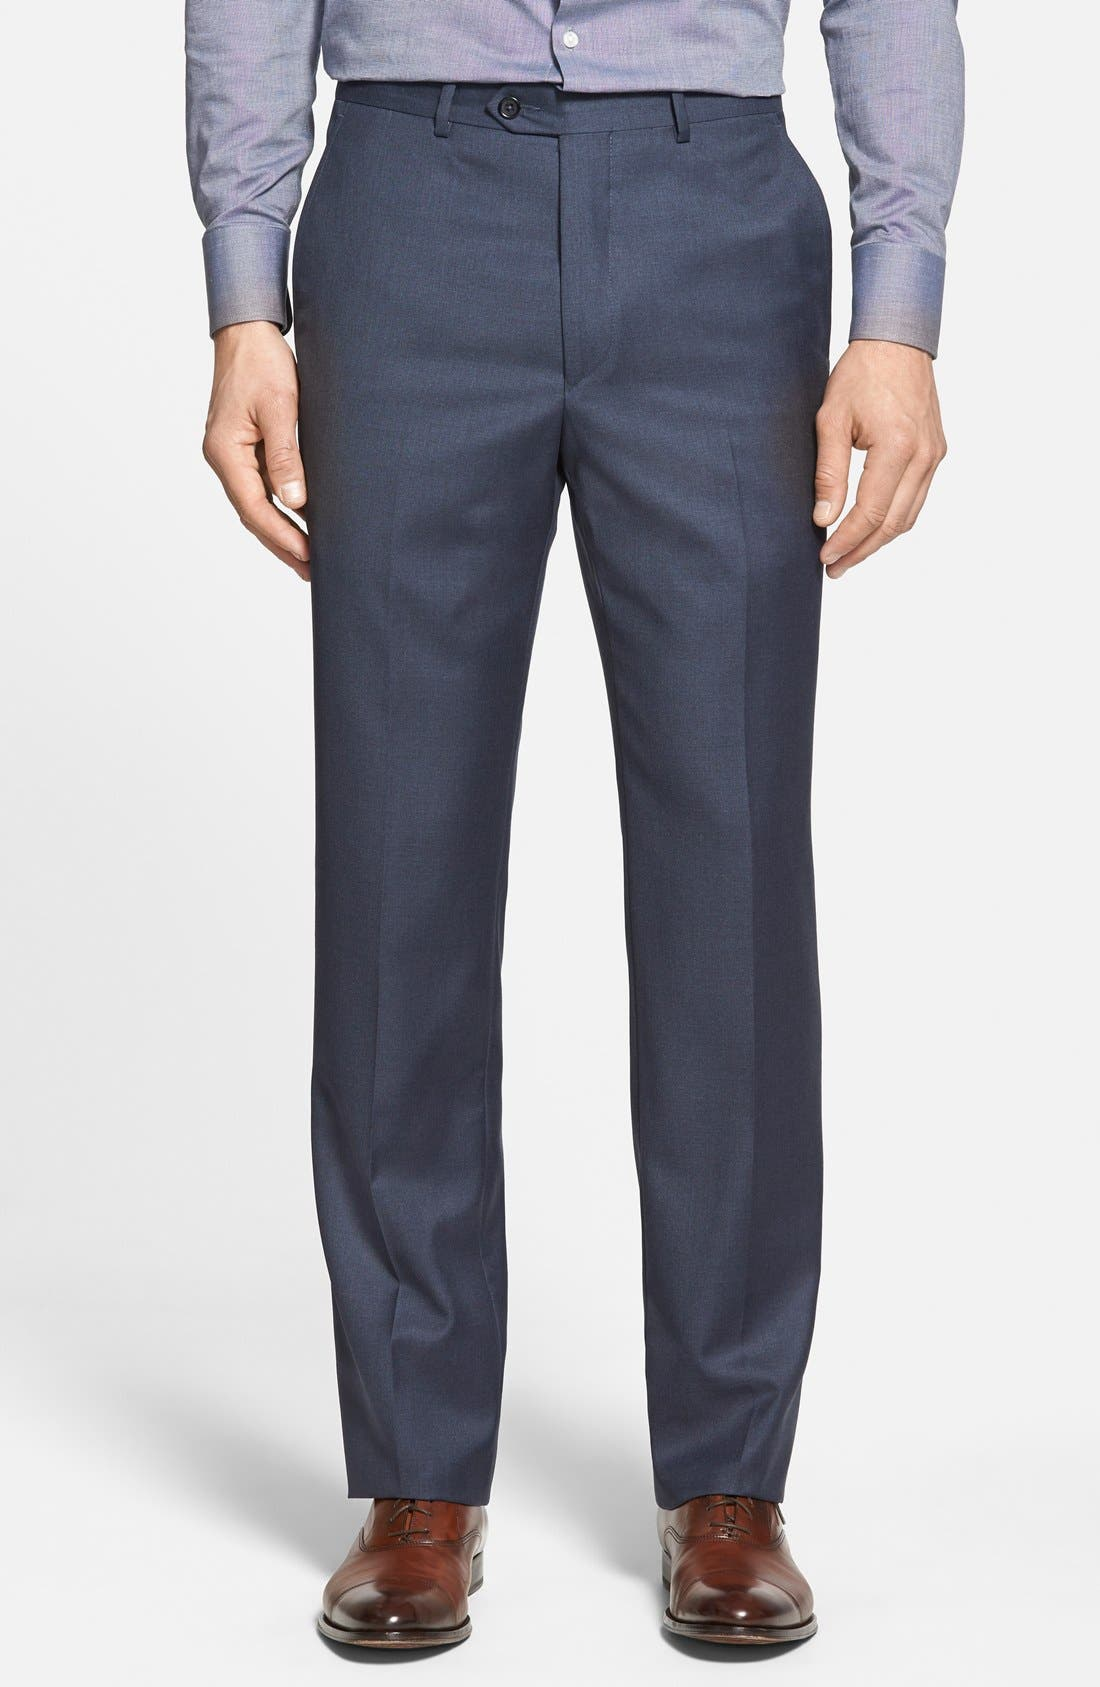 Luxury Flat Front Wool Trousers,                             Main thumbnail 1, color,                             Medium Blue